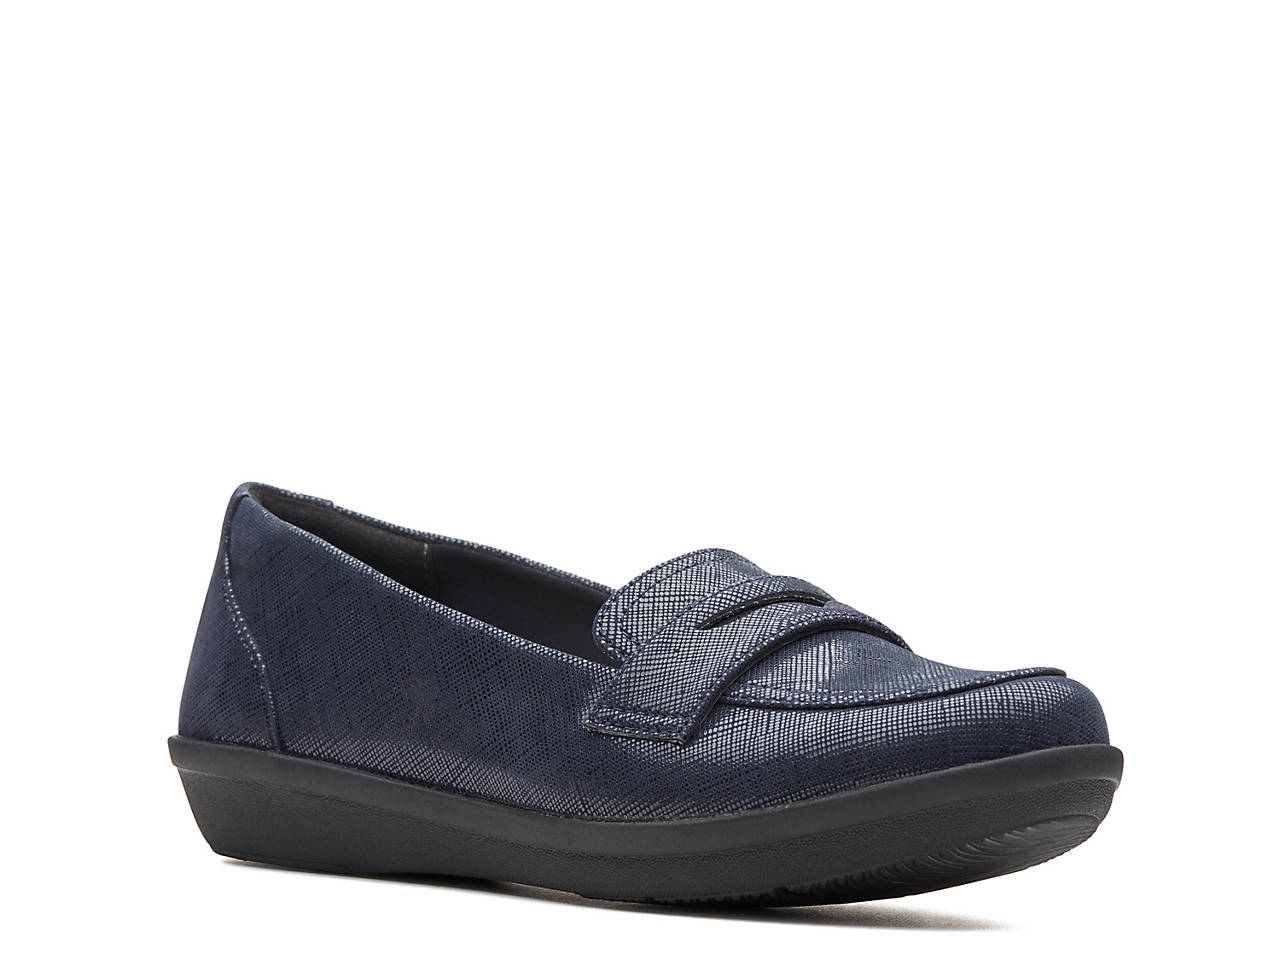 a728b97bf84 Clarks Ayla Form Penny Loafer Women s Shoes